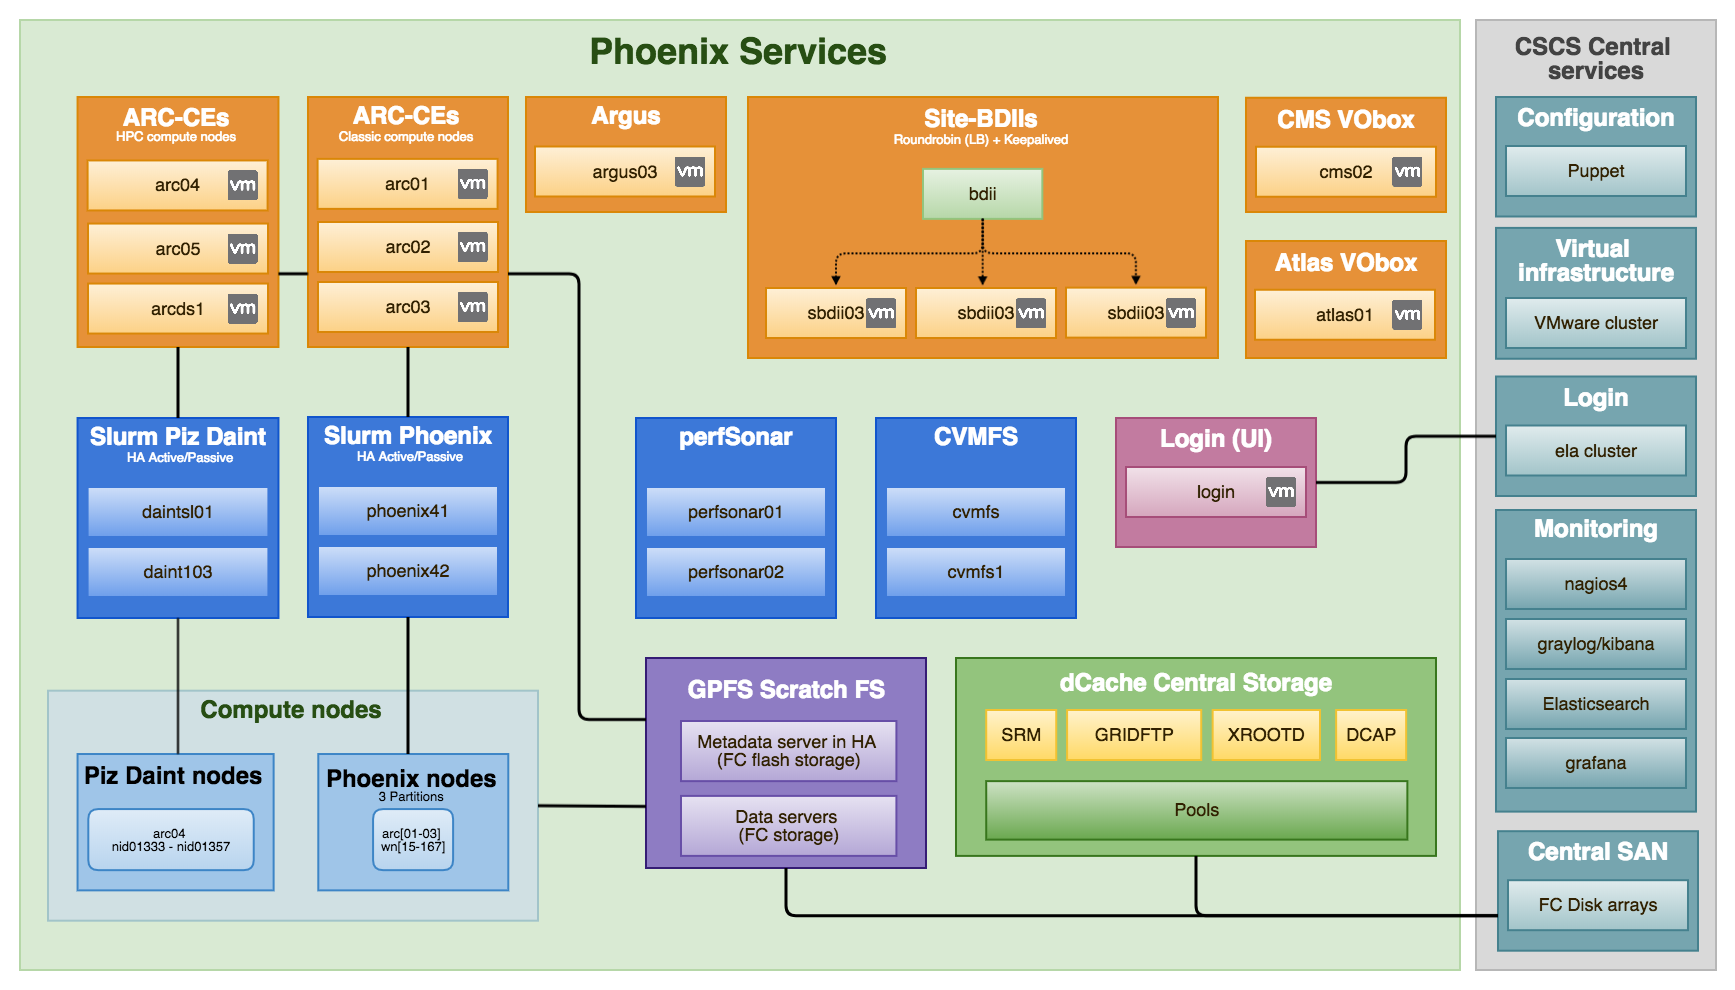 phoenix_services_future.png